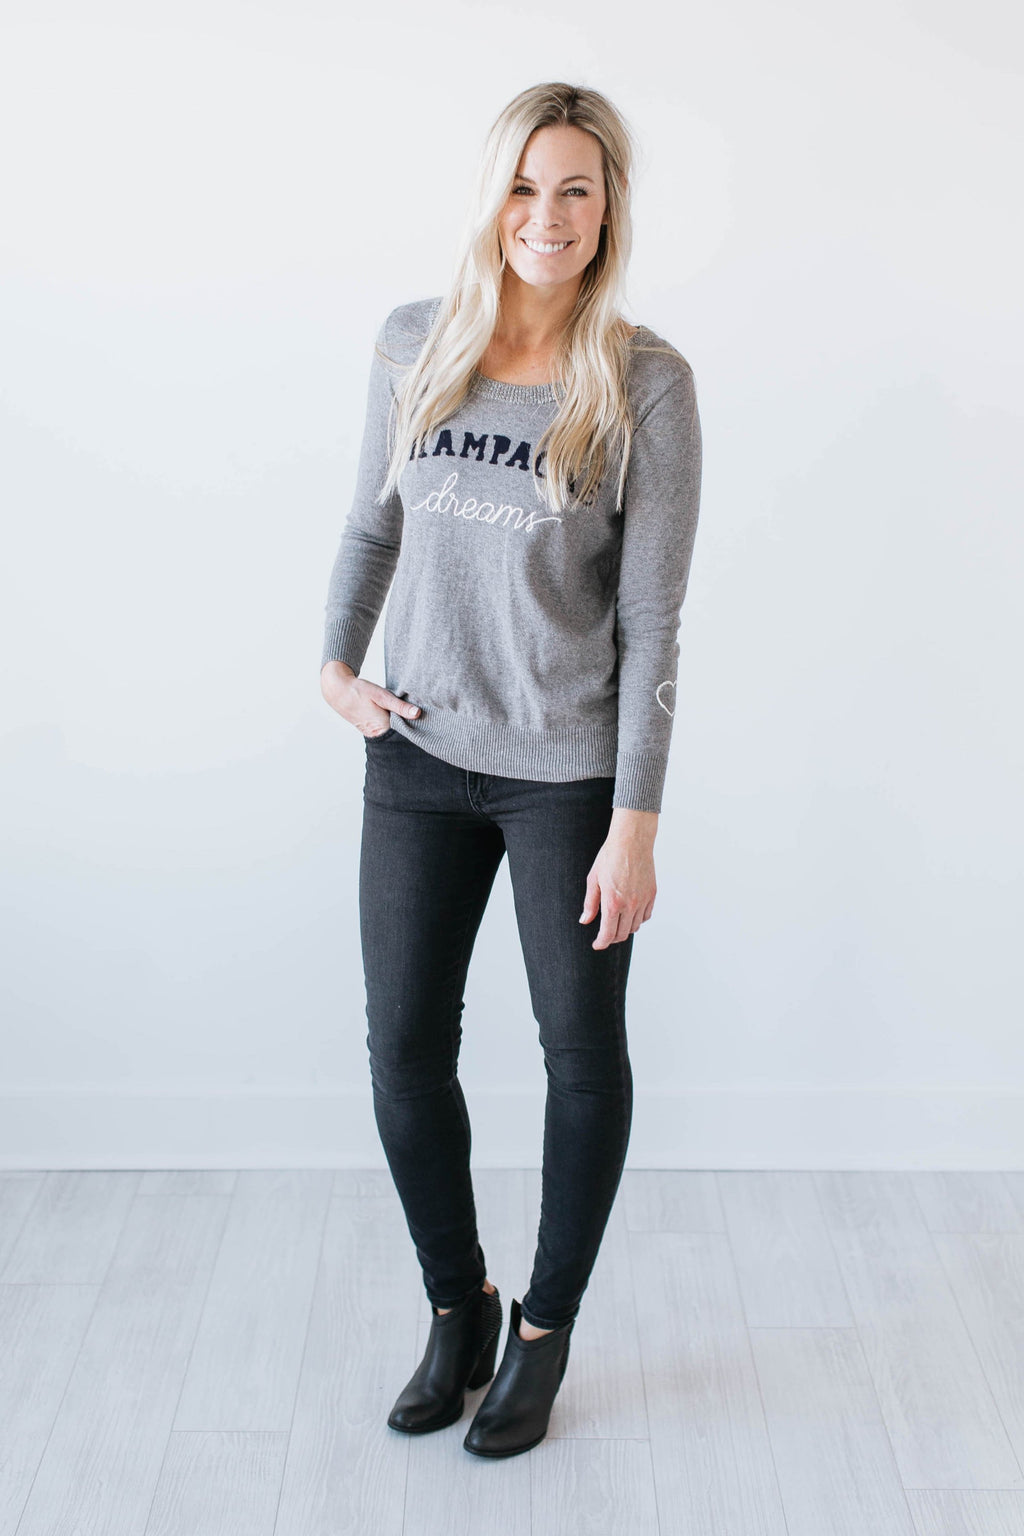 Champagne Dreams Pullover - Grey - Seven Oaks